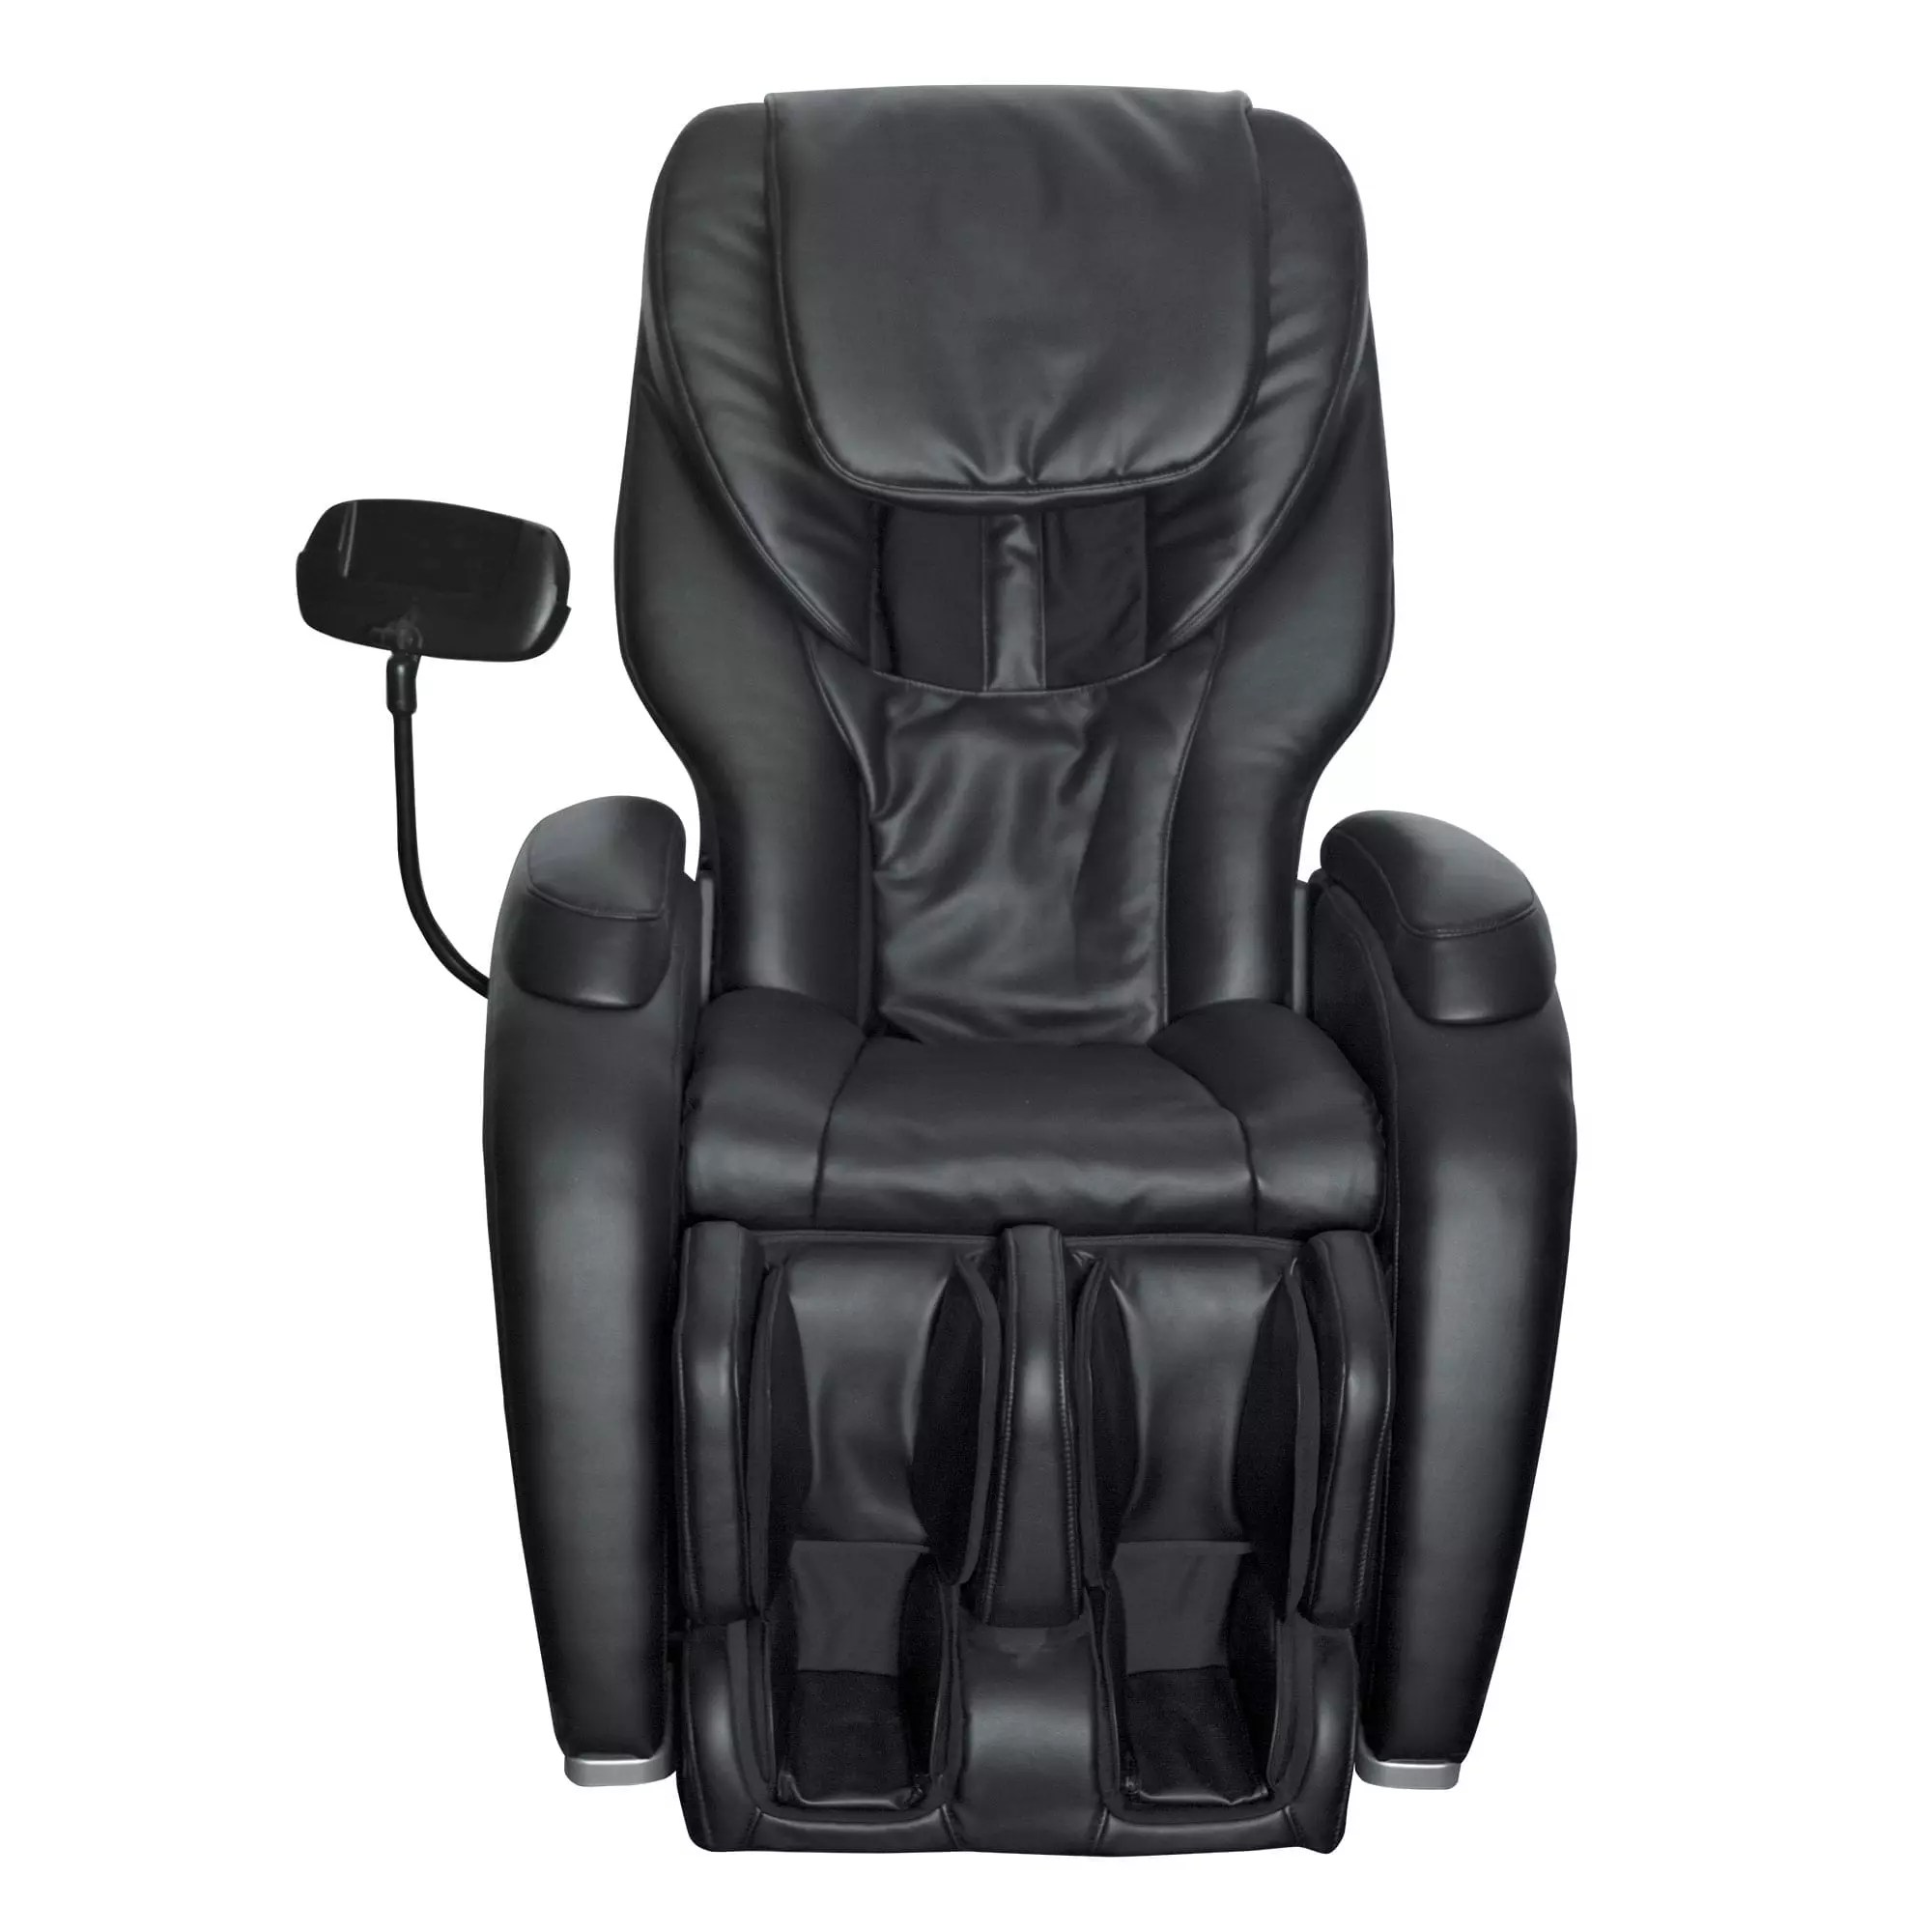 positive posture massage chair reviews round swivel living room ep ma10 a great value from panasonic